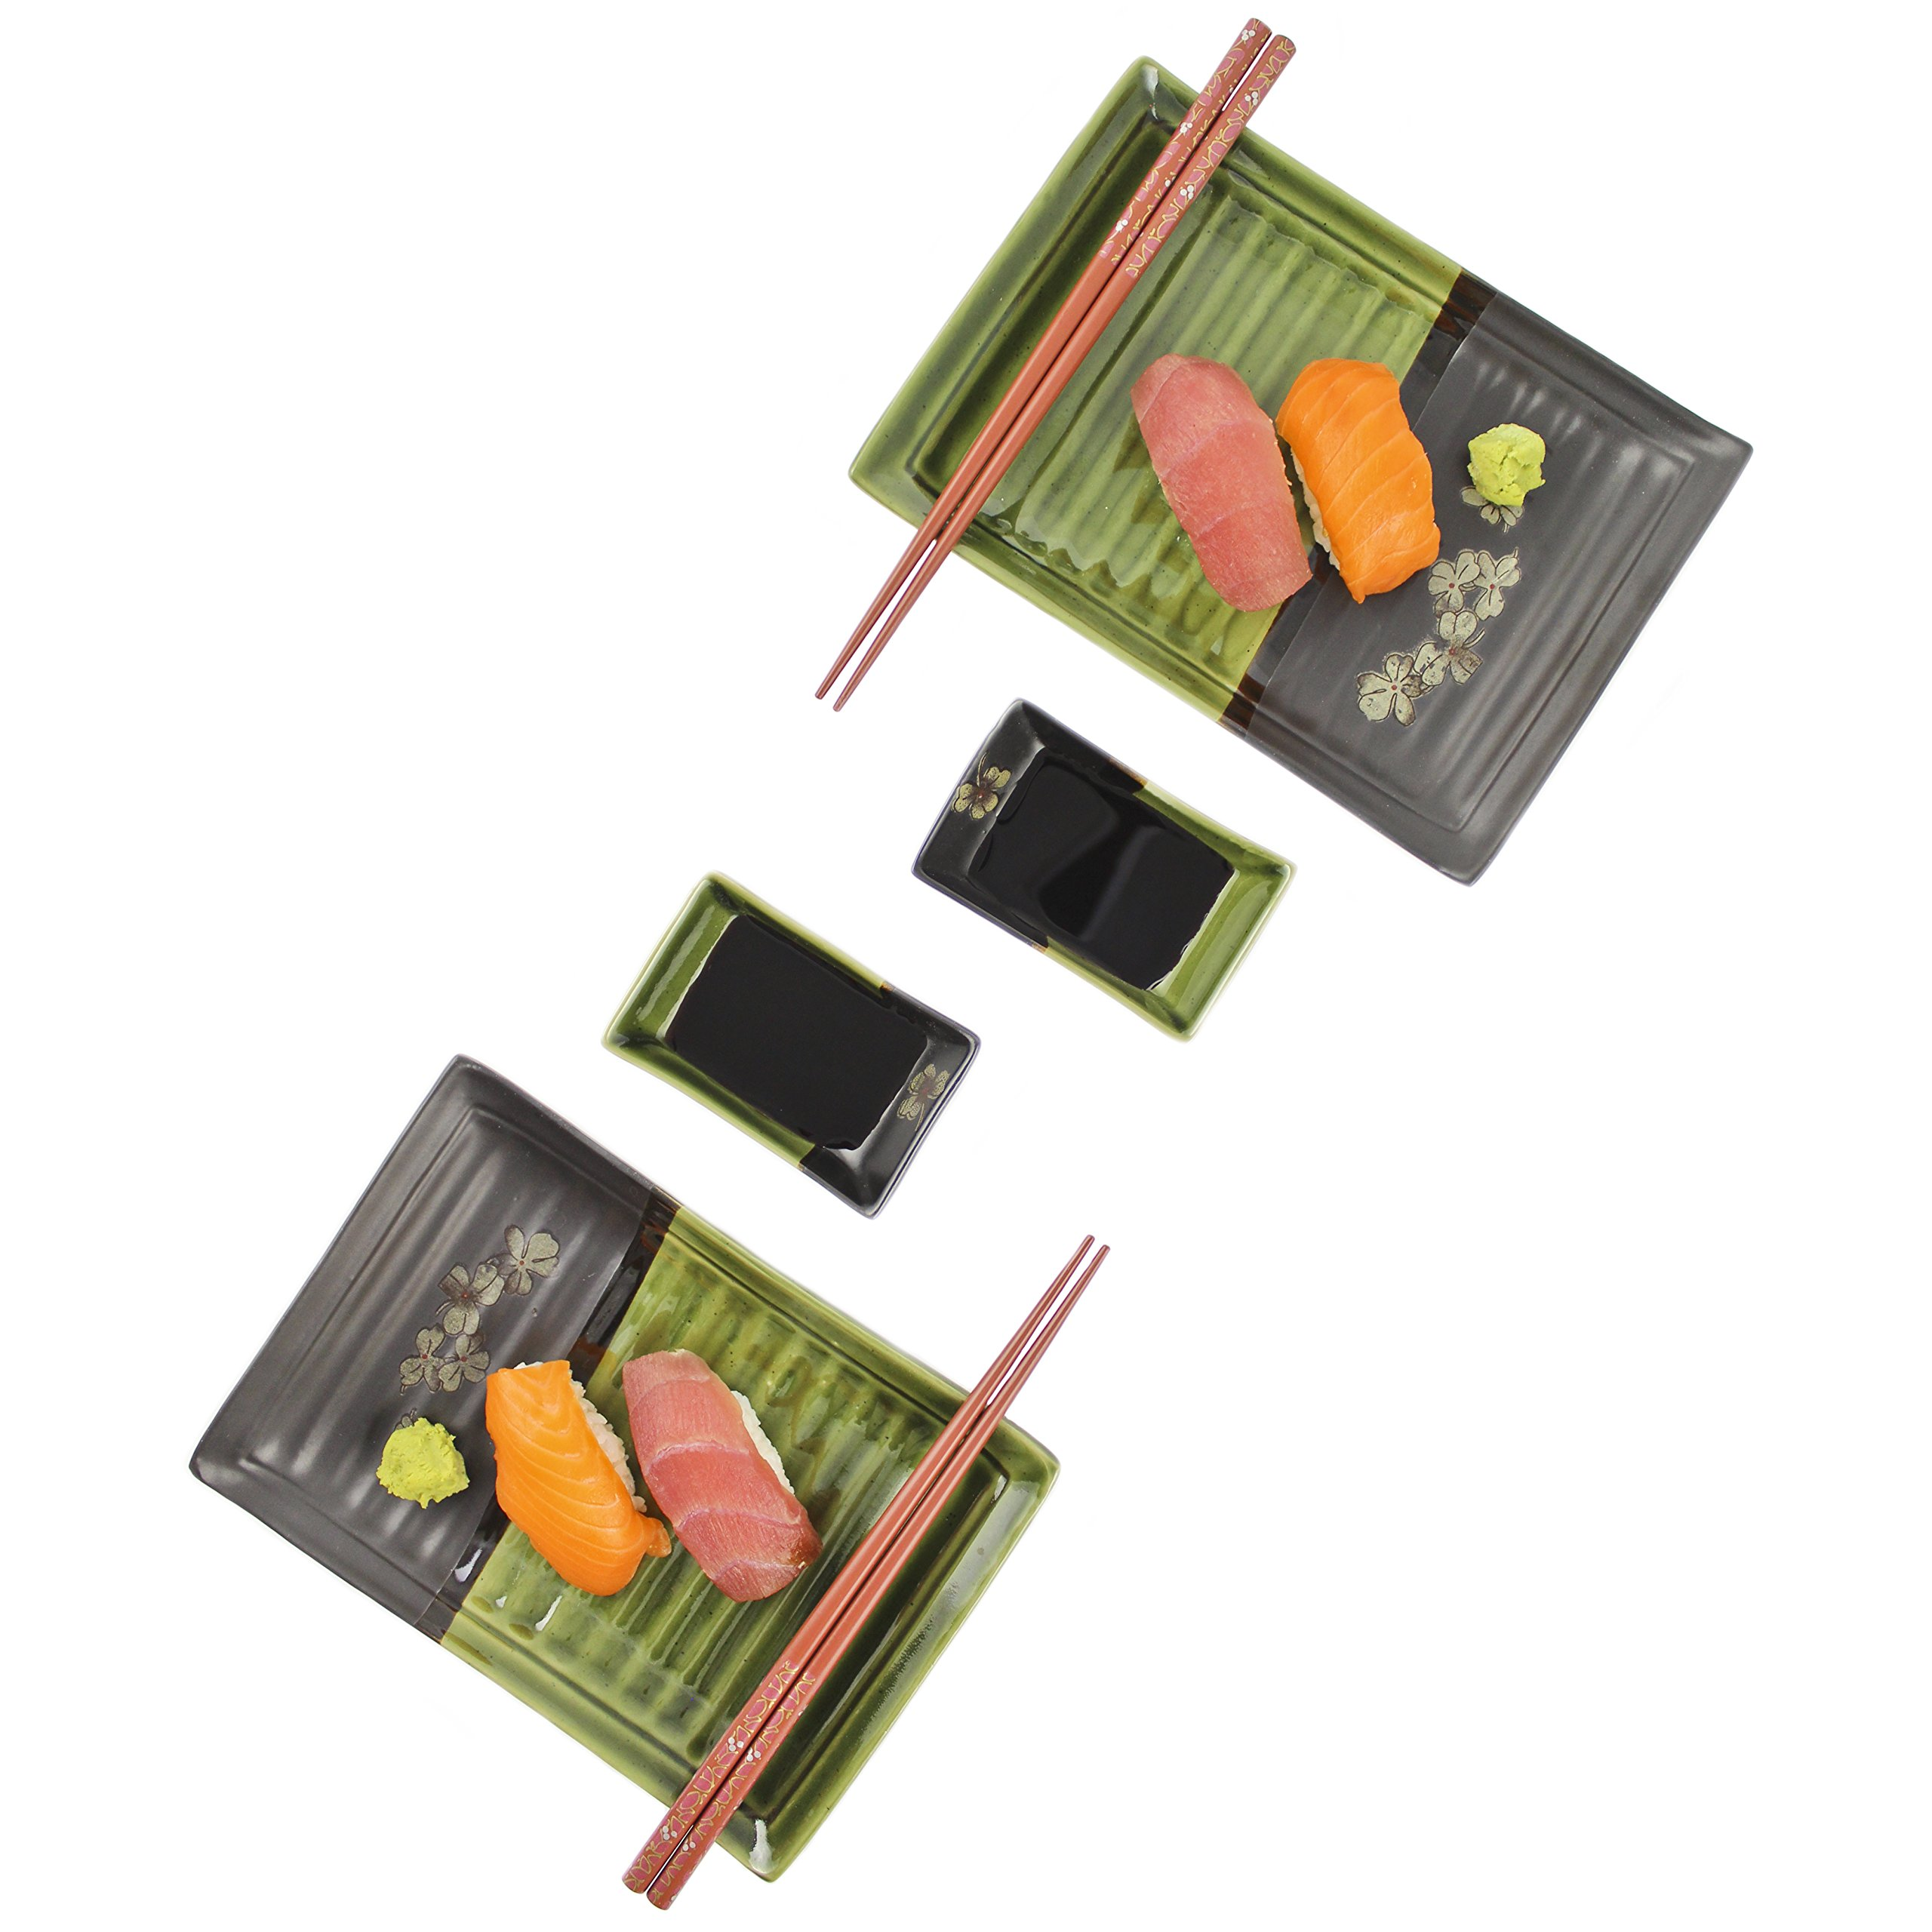 Zoie + Chloe Ceramic Sushi Gift Set For Two